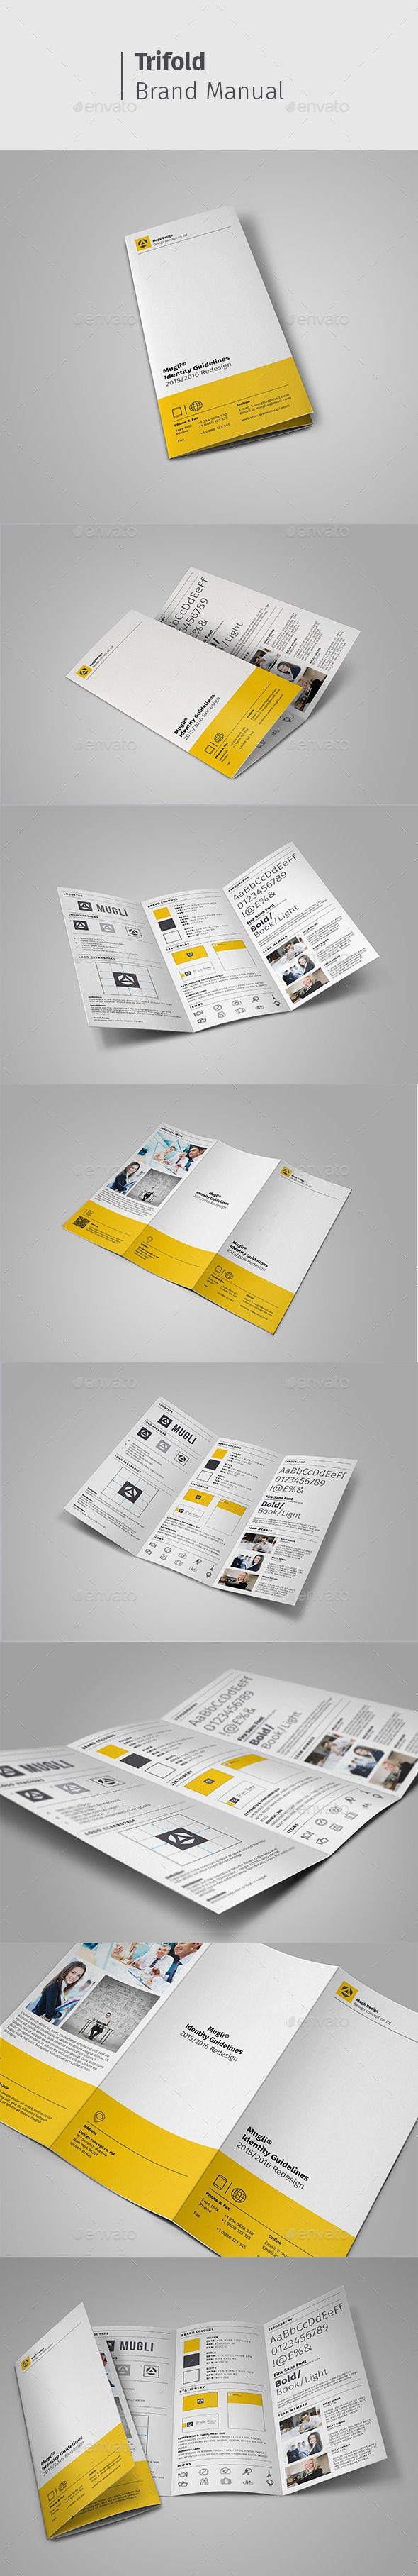 Brand Manual Brochure Template PSD #design Download: http://graphicriver.net/item/brand-manual/13250631?ref=ksioks